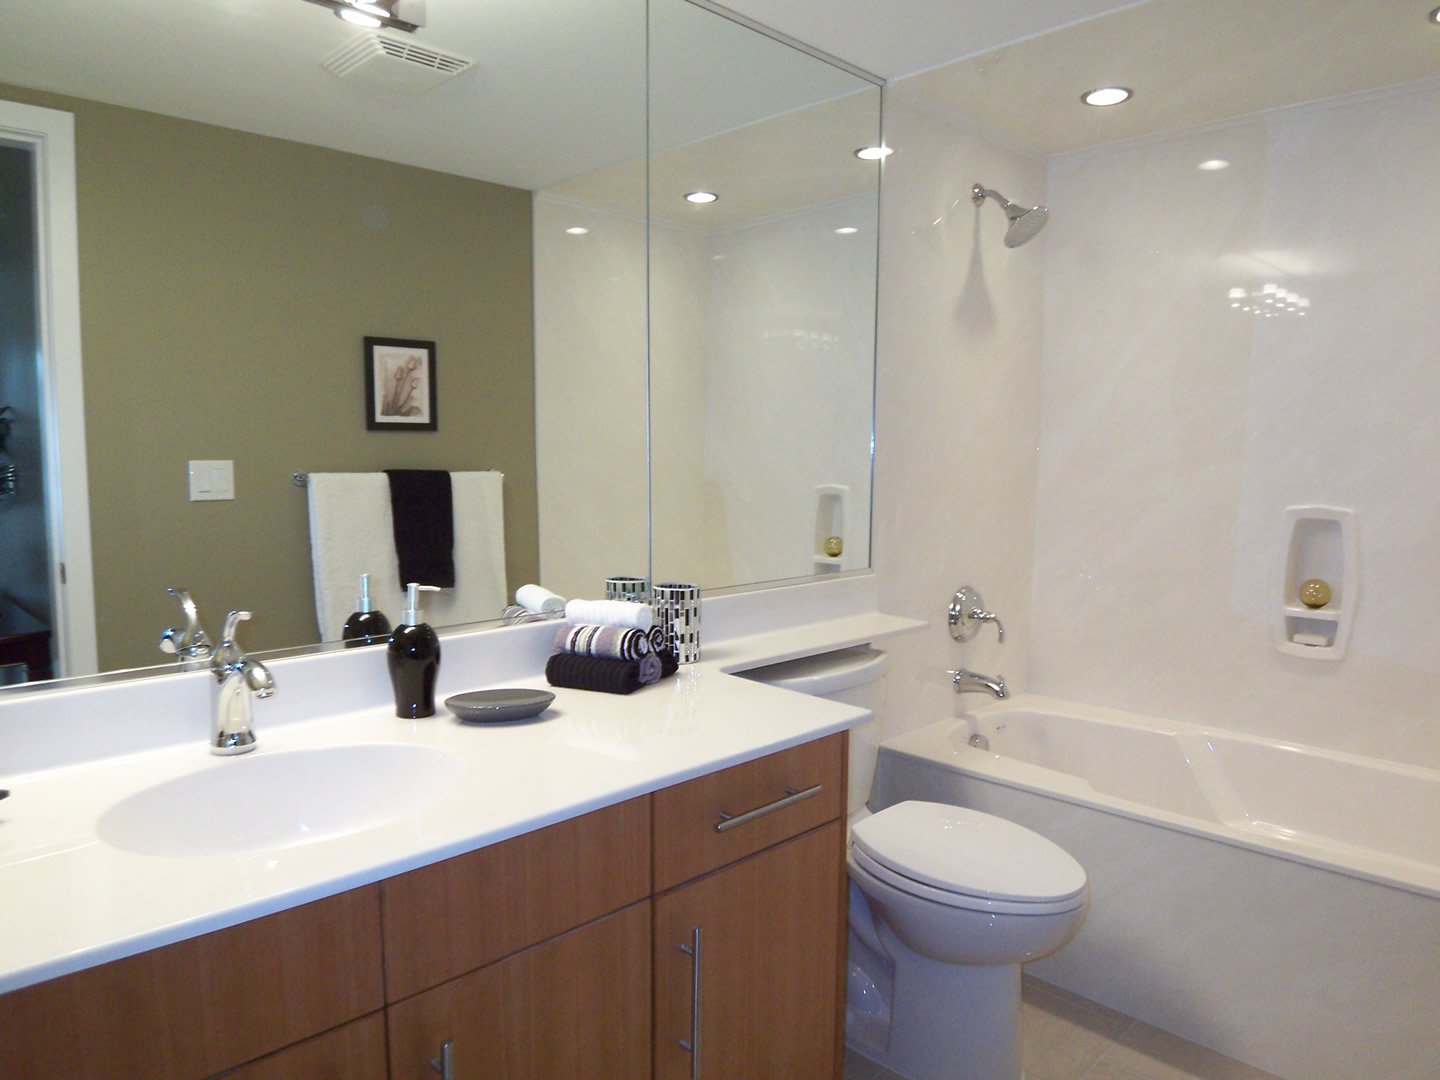 precision_marble_cultured_bathroom_countertop__Victoria-home-renovations